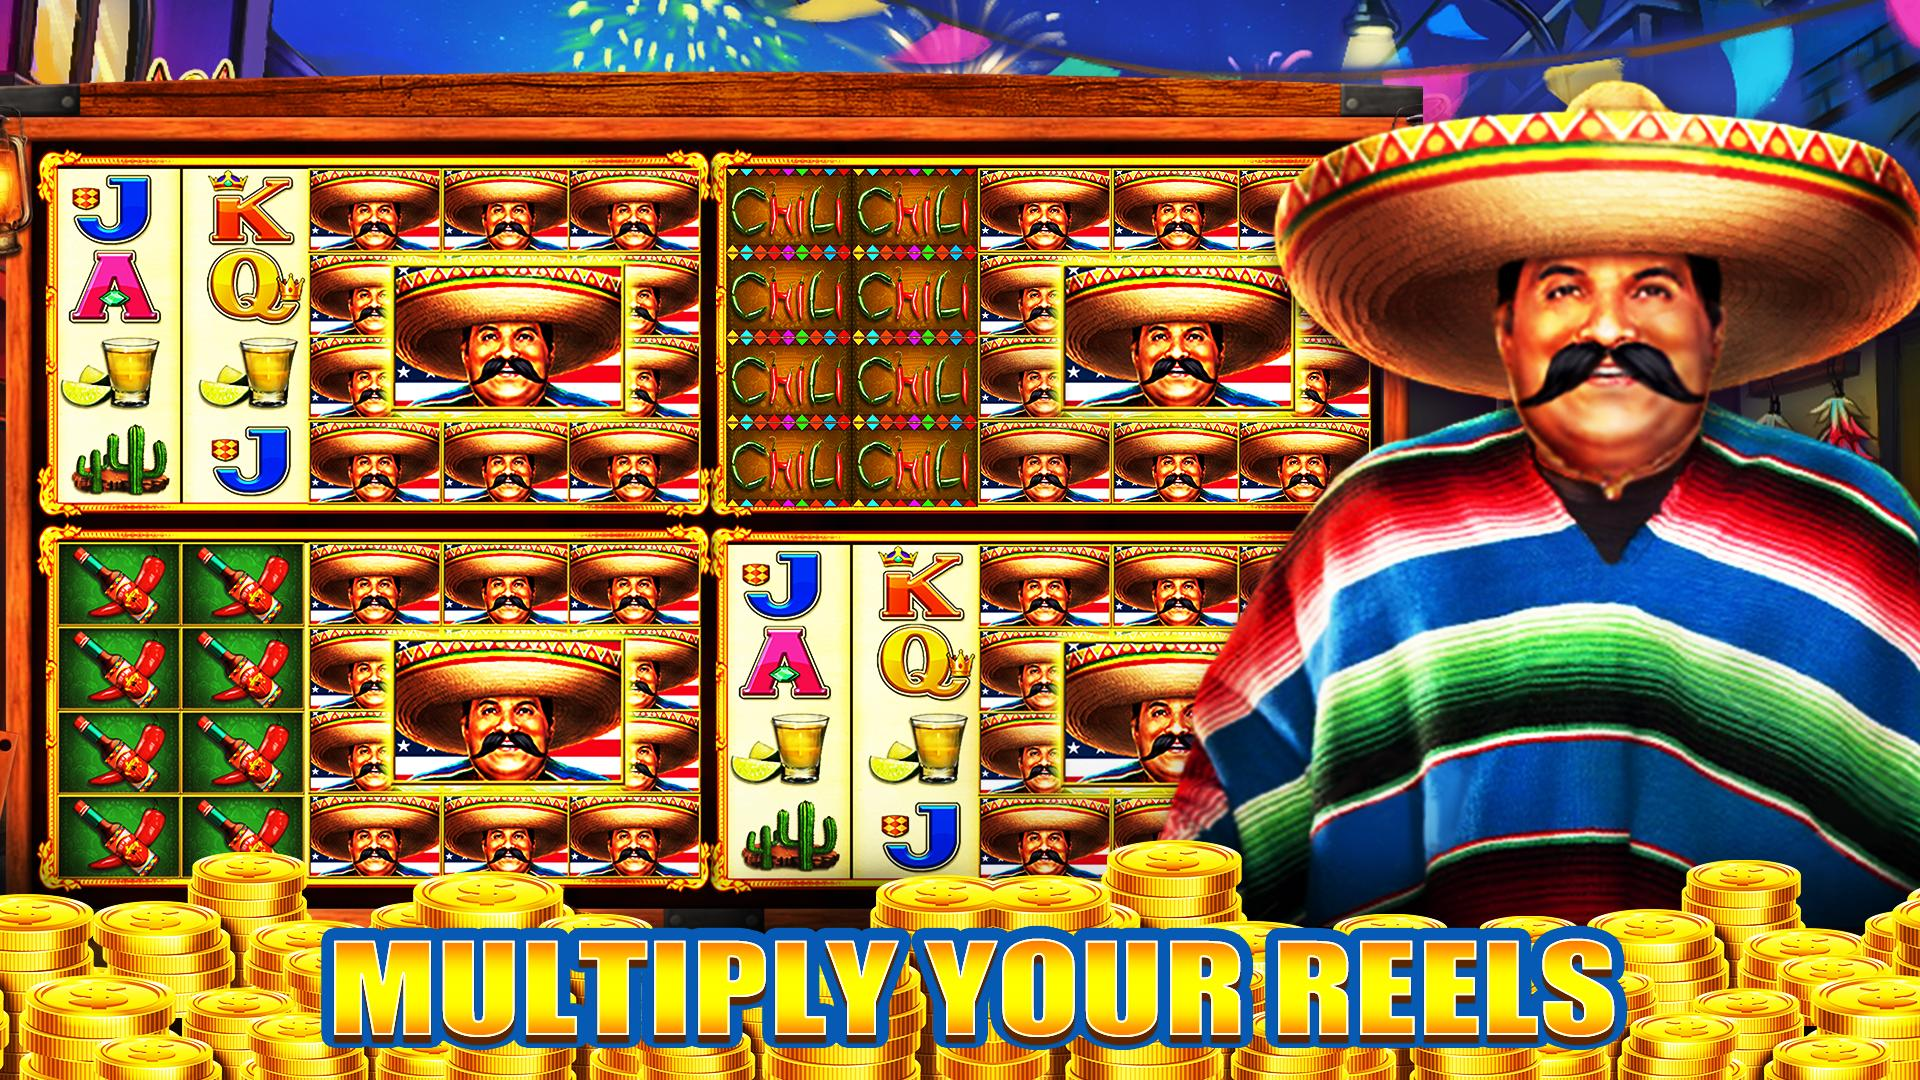 Vegas Casino Slots 2020 - 2,000,000 Free Coins 1.0.34 Screenshot 21